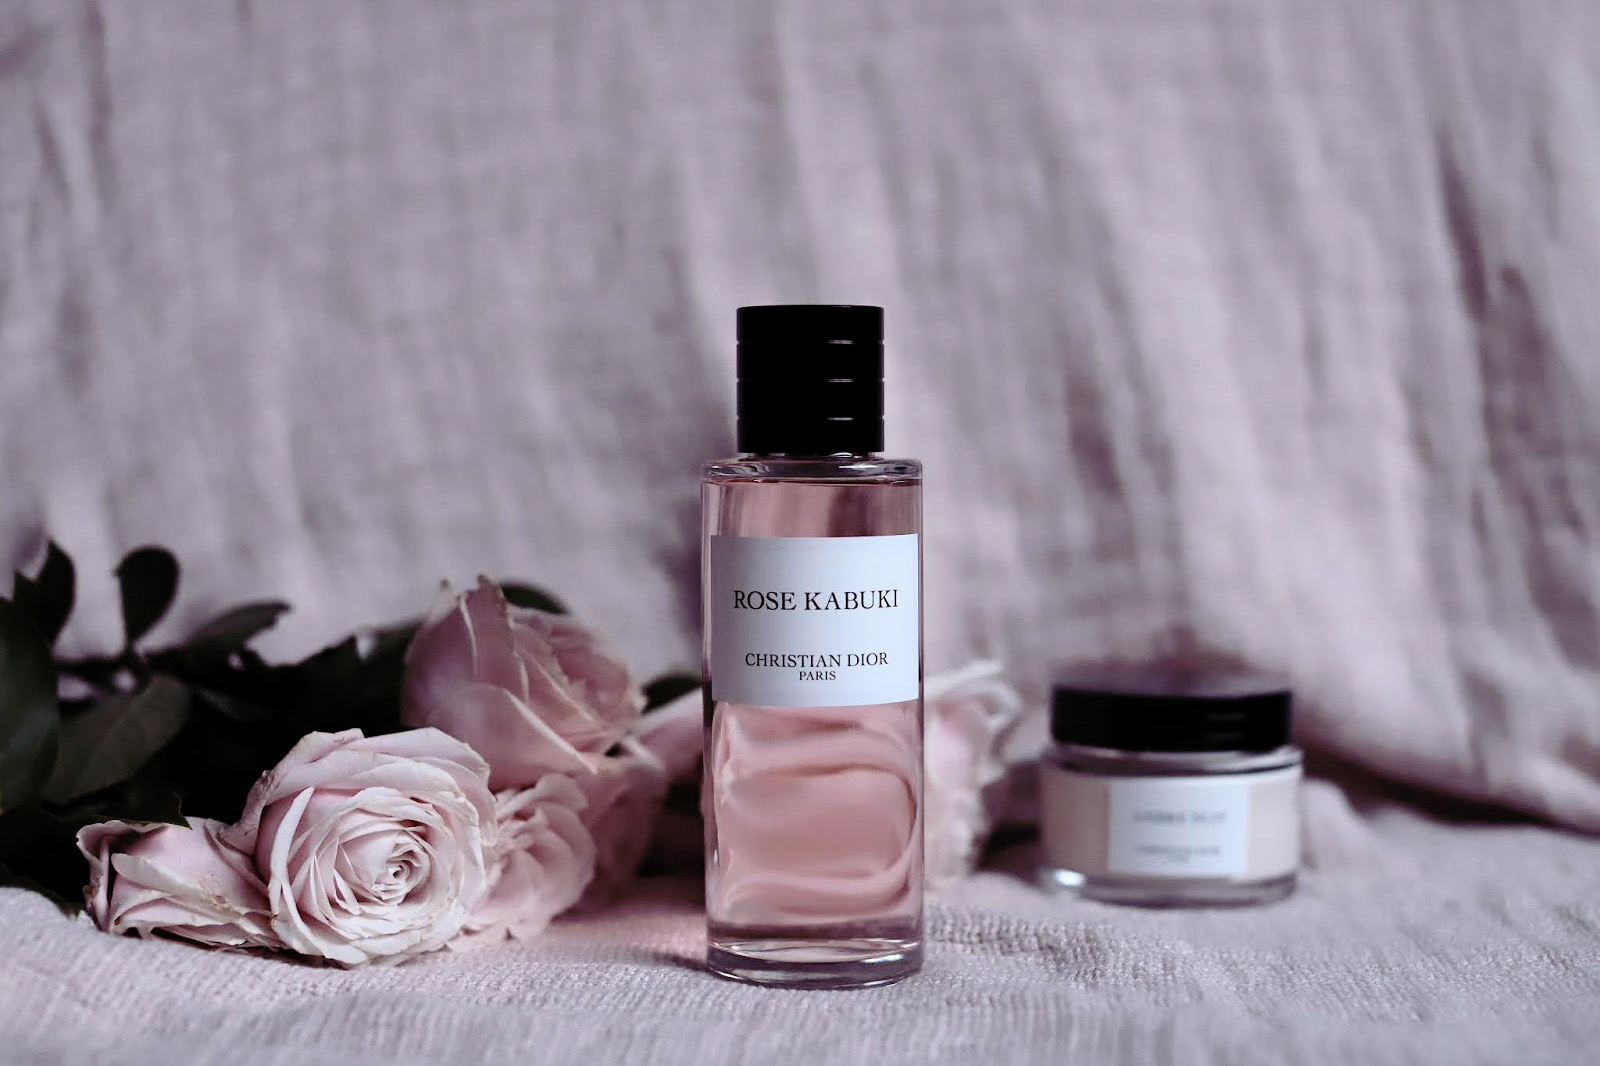 maison christian dior parfums rose kabuki avis test critique